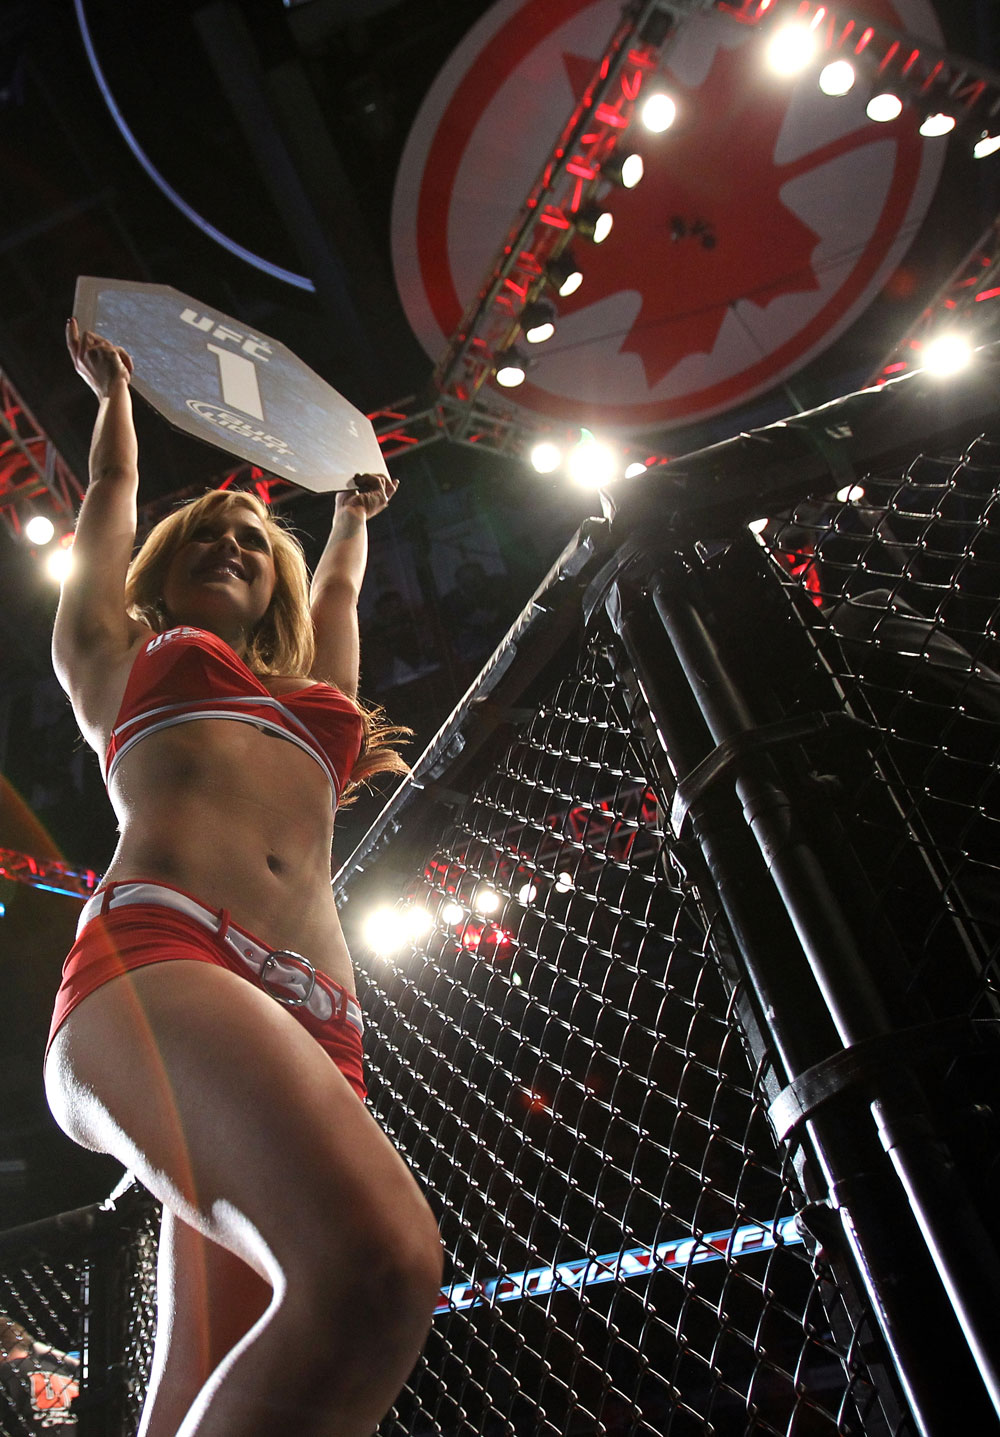 TORONTO, ON - DECEMBER 10:  UFC Octagon Girl Brittney Palmer introduces round one before the Bocek v Lentz bout during the UFC 140 event at Air Canada Centre on December 10, 2011 in Toronto, Ontario, Canada.  (Photo by Josh Hedges/Zuffa LLC/Zuffa LLC via Getty Images)